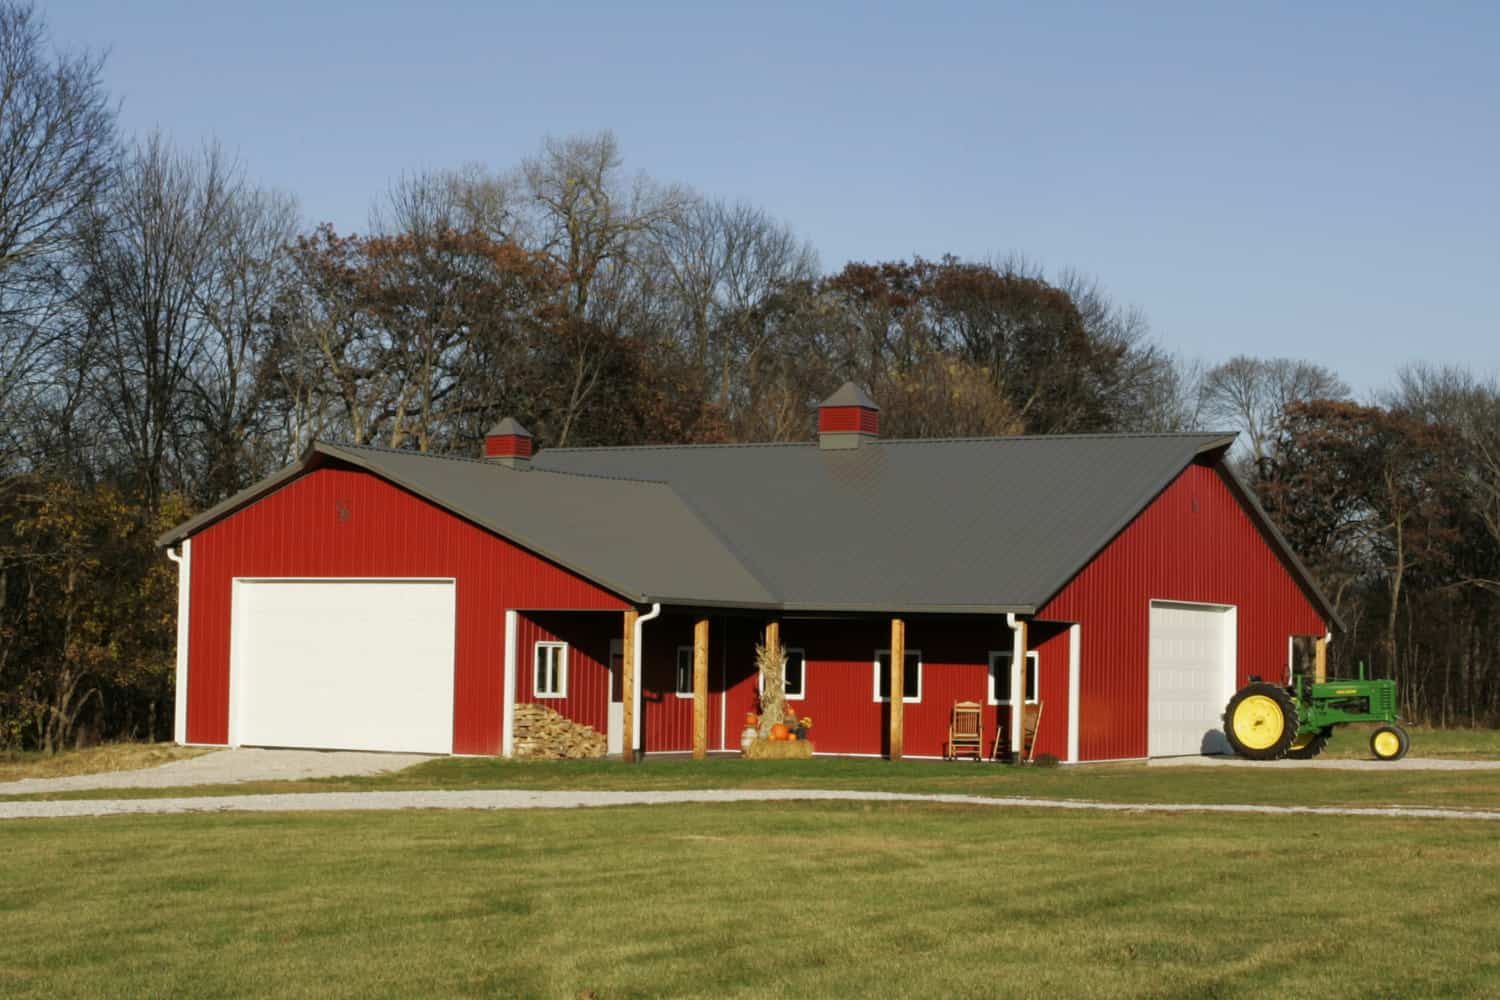 Residential garage and hobby gallery in iowa illinois for Residential barns